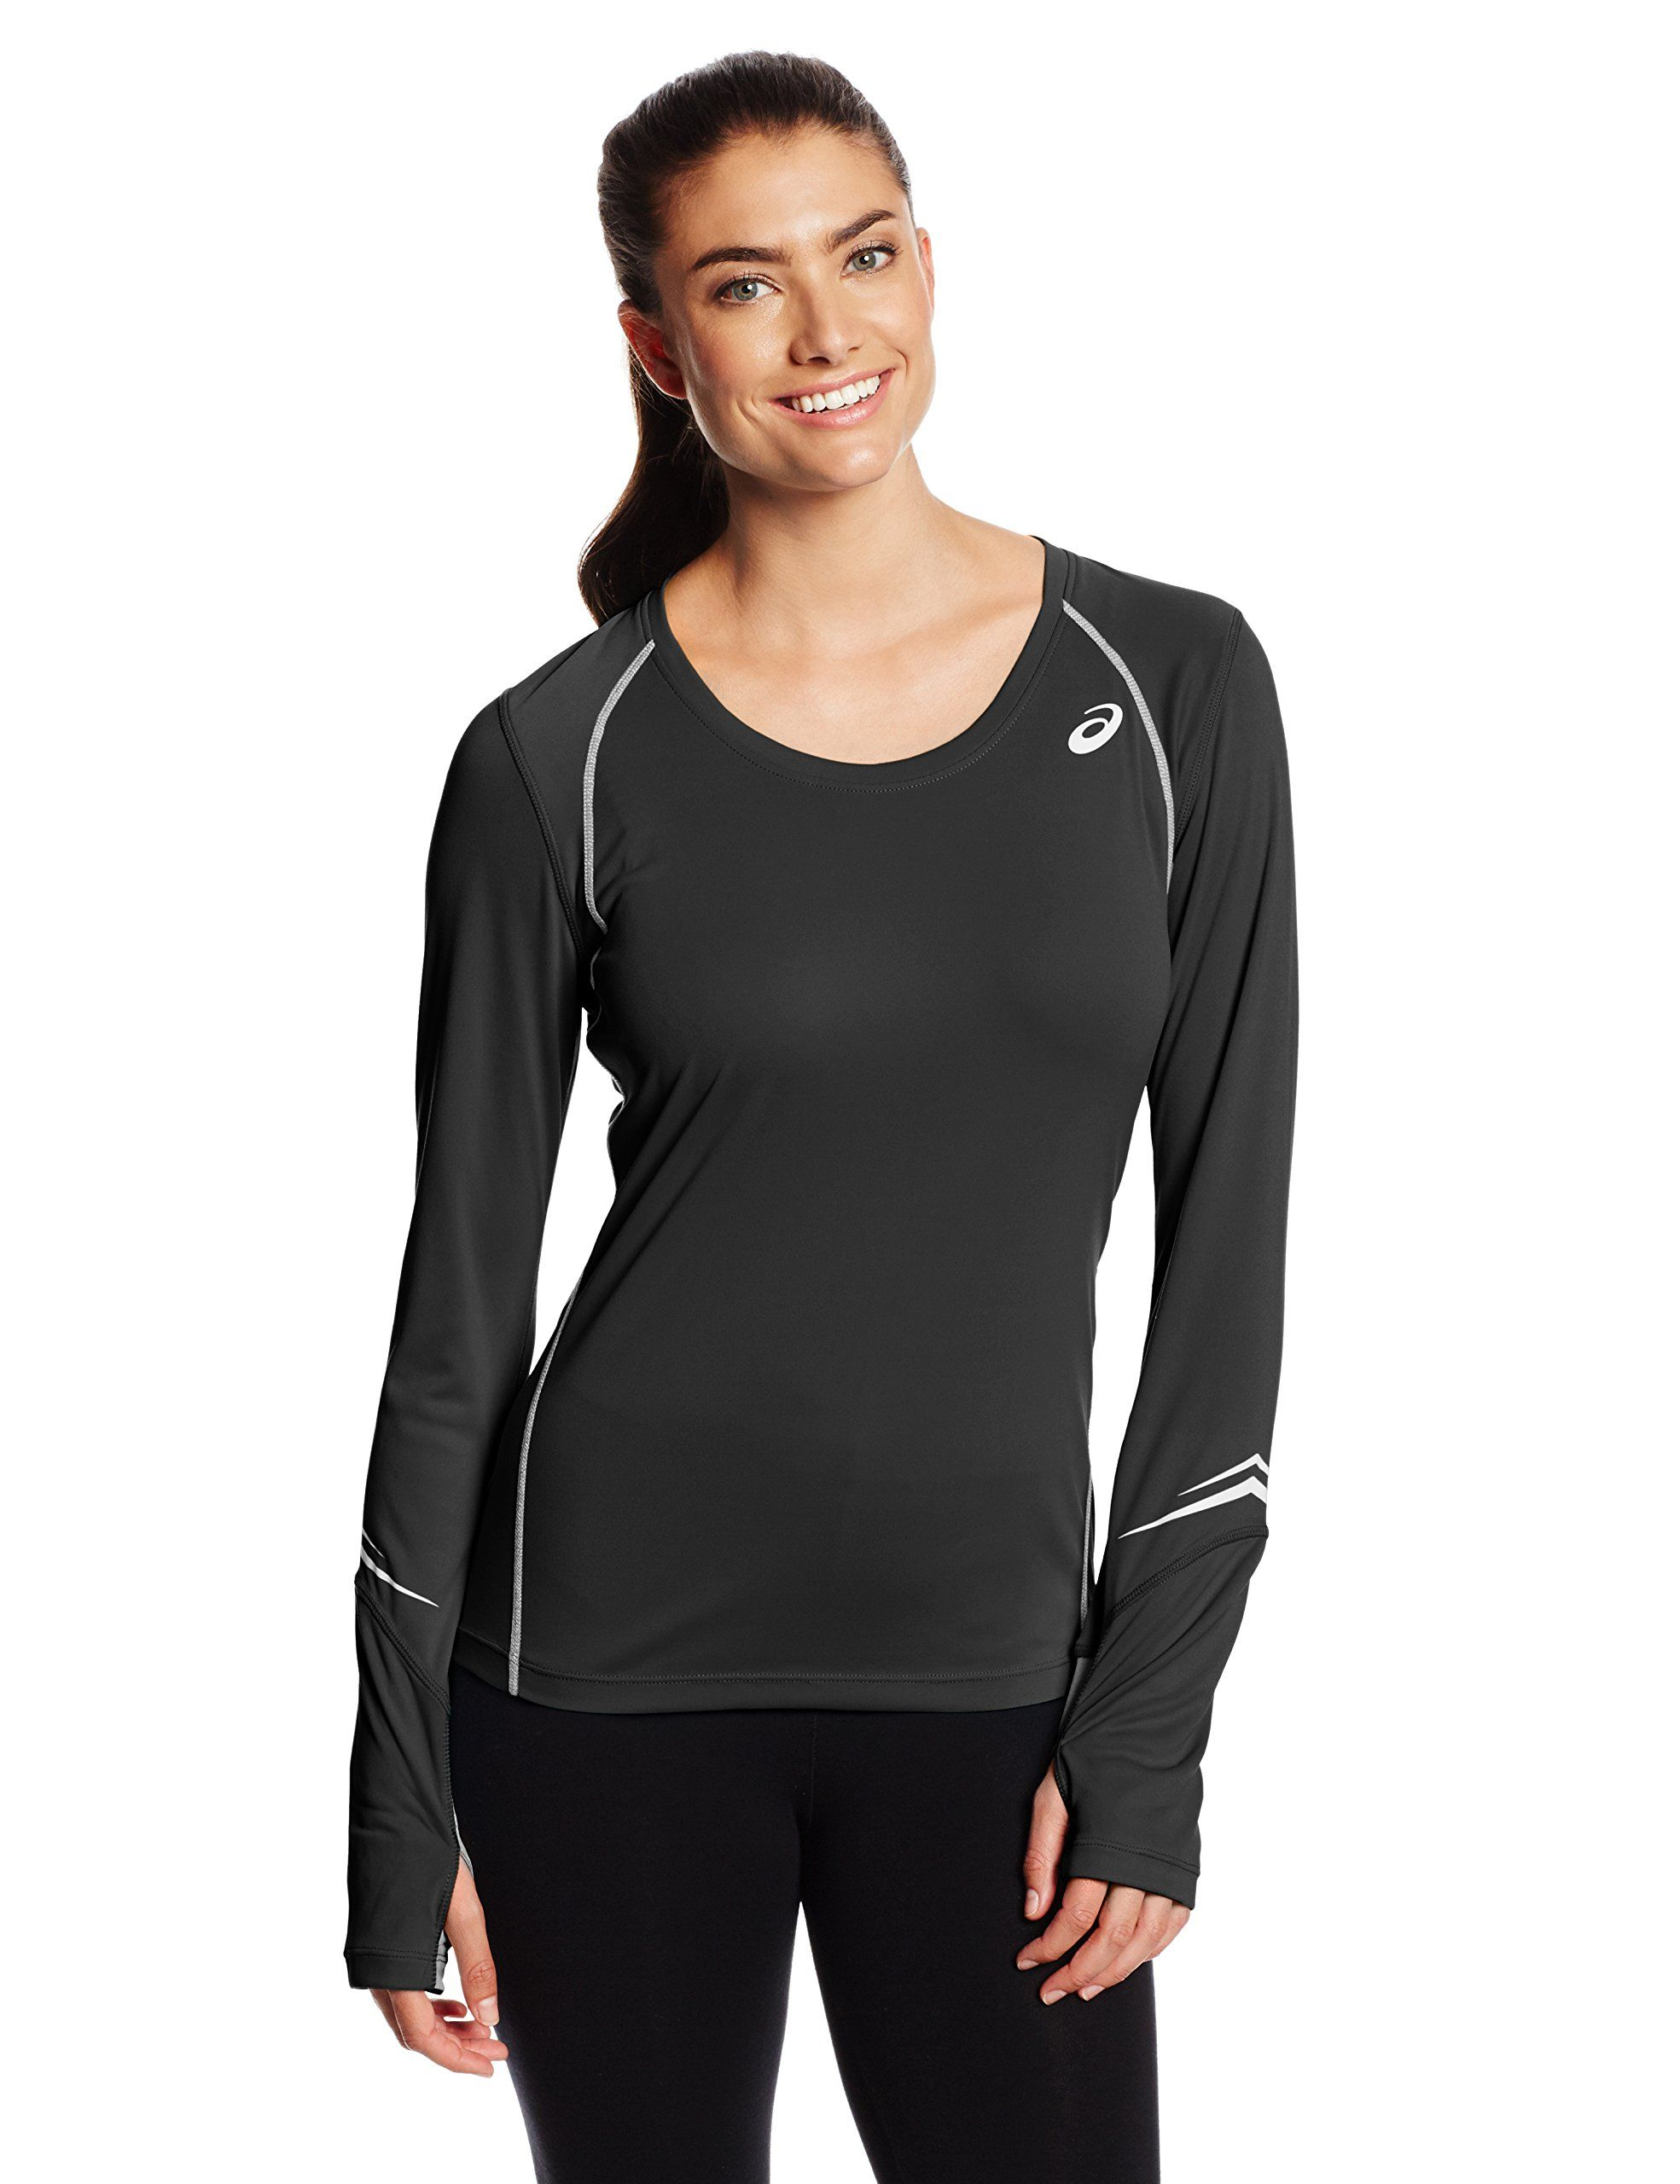 0adbcd0e71f0 Asics Women s Lite-Show High Visibility Favorite Long Sleeve Top ...